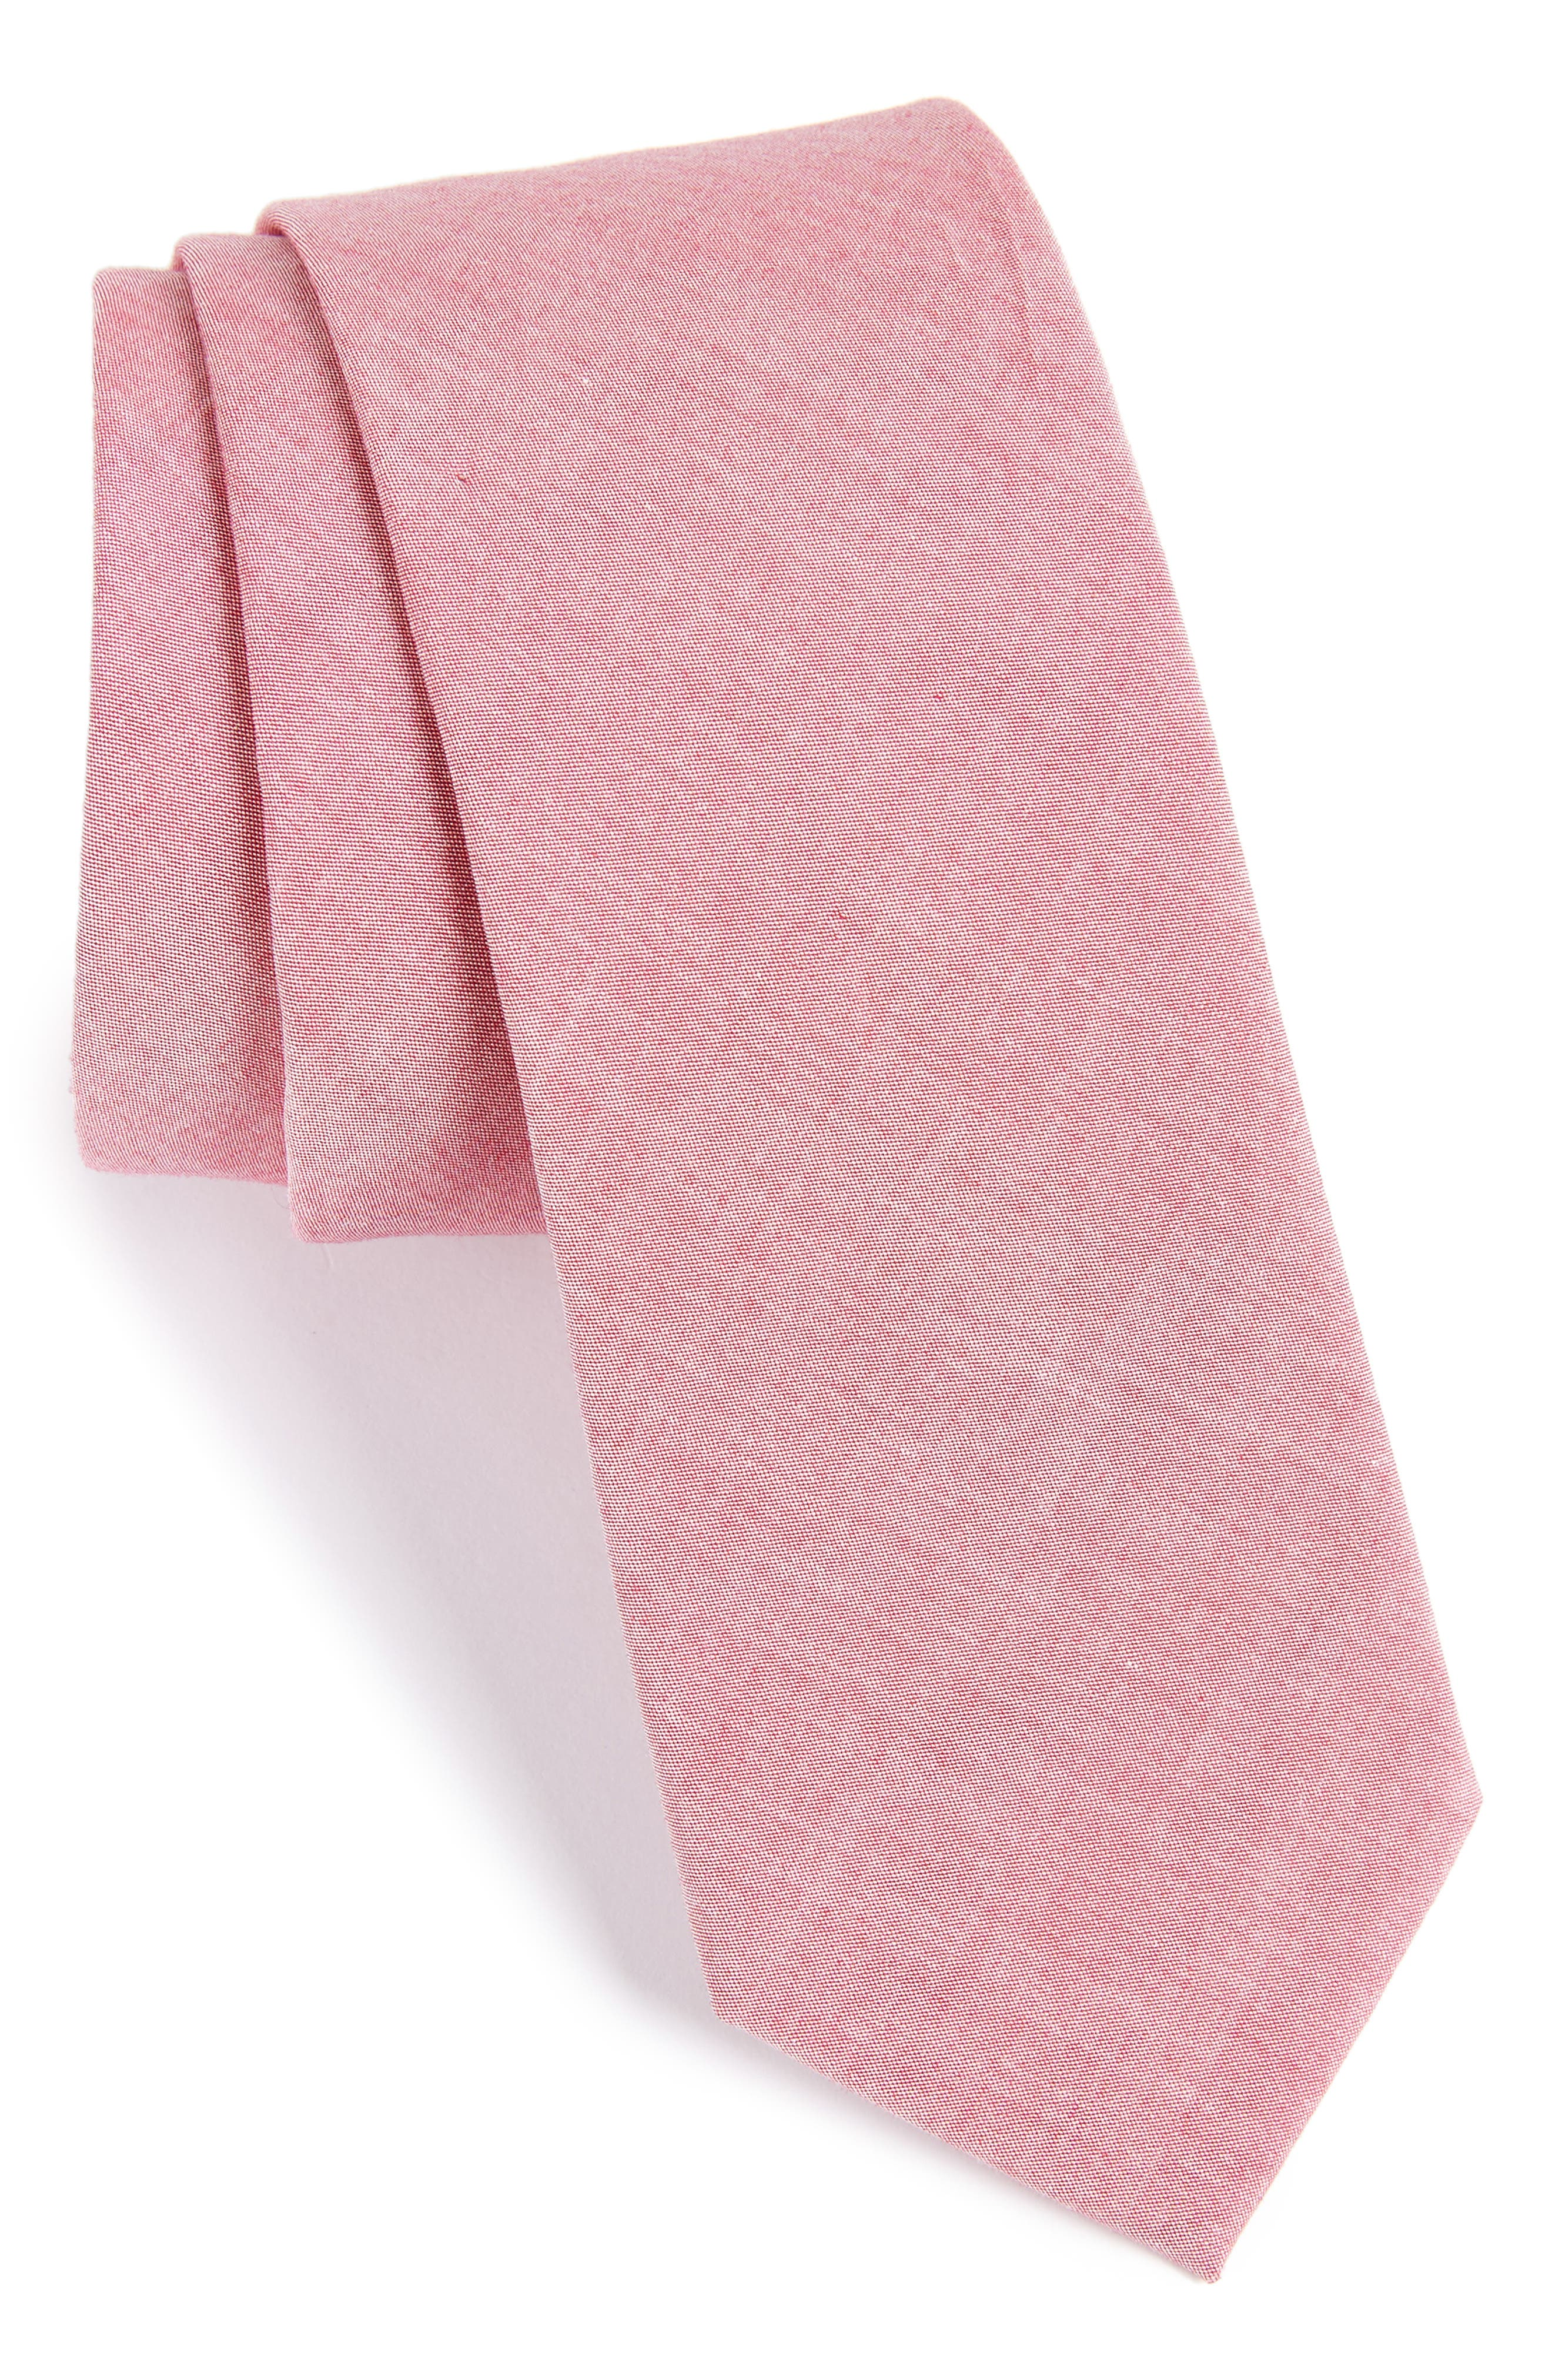 Johnson Solid Cotton Tie,                         Main,                         color, Red